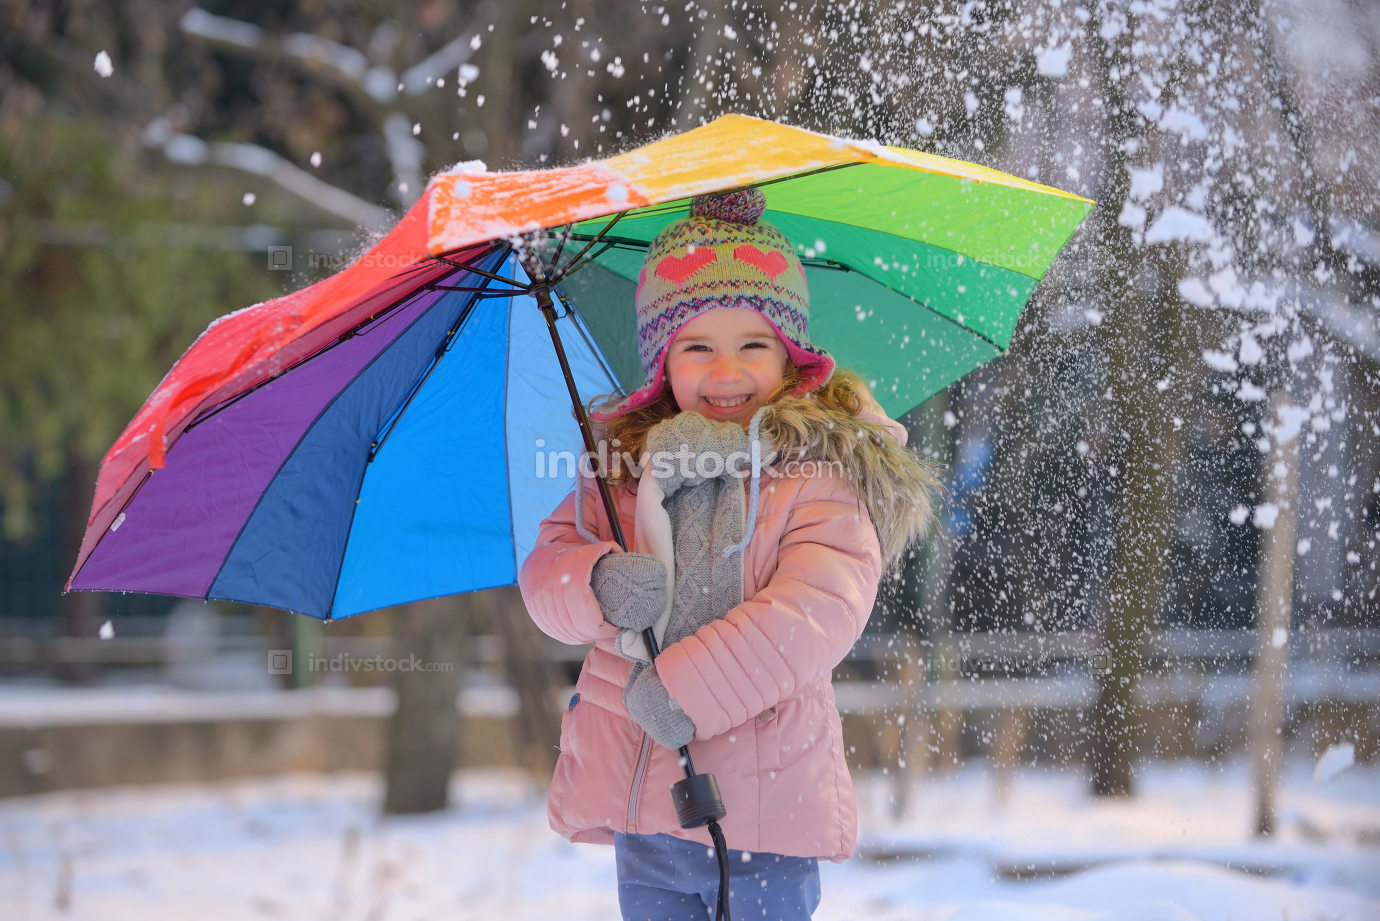 Little girl under umbrella in winter